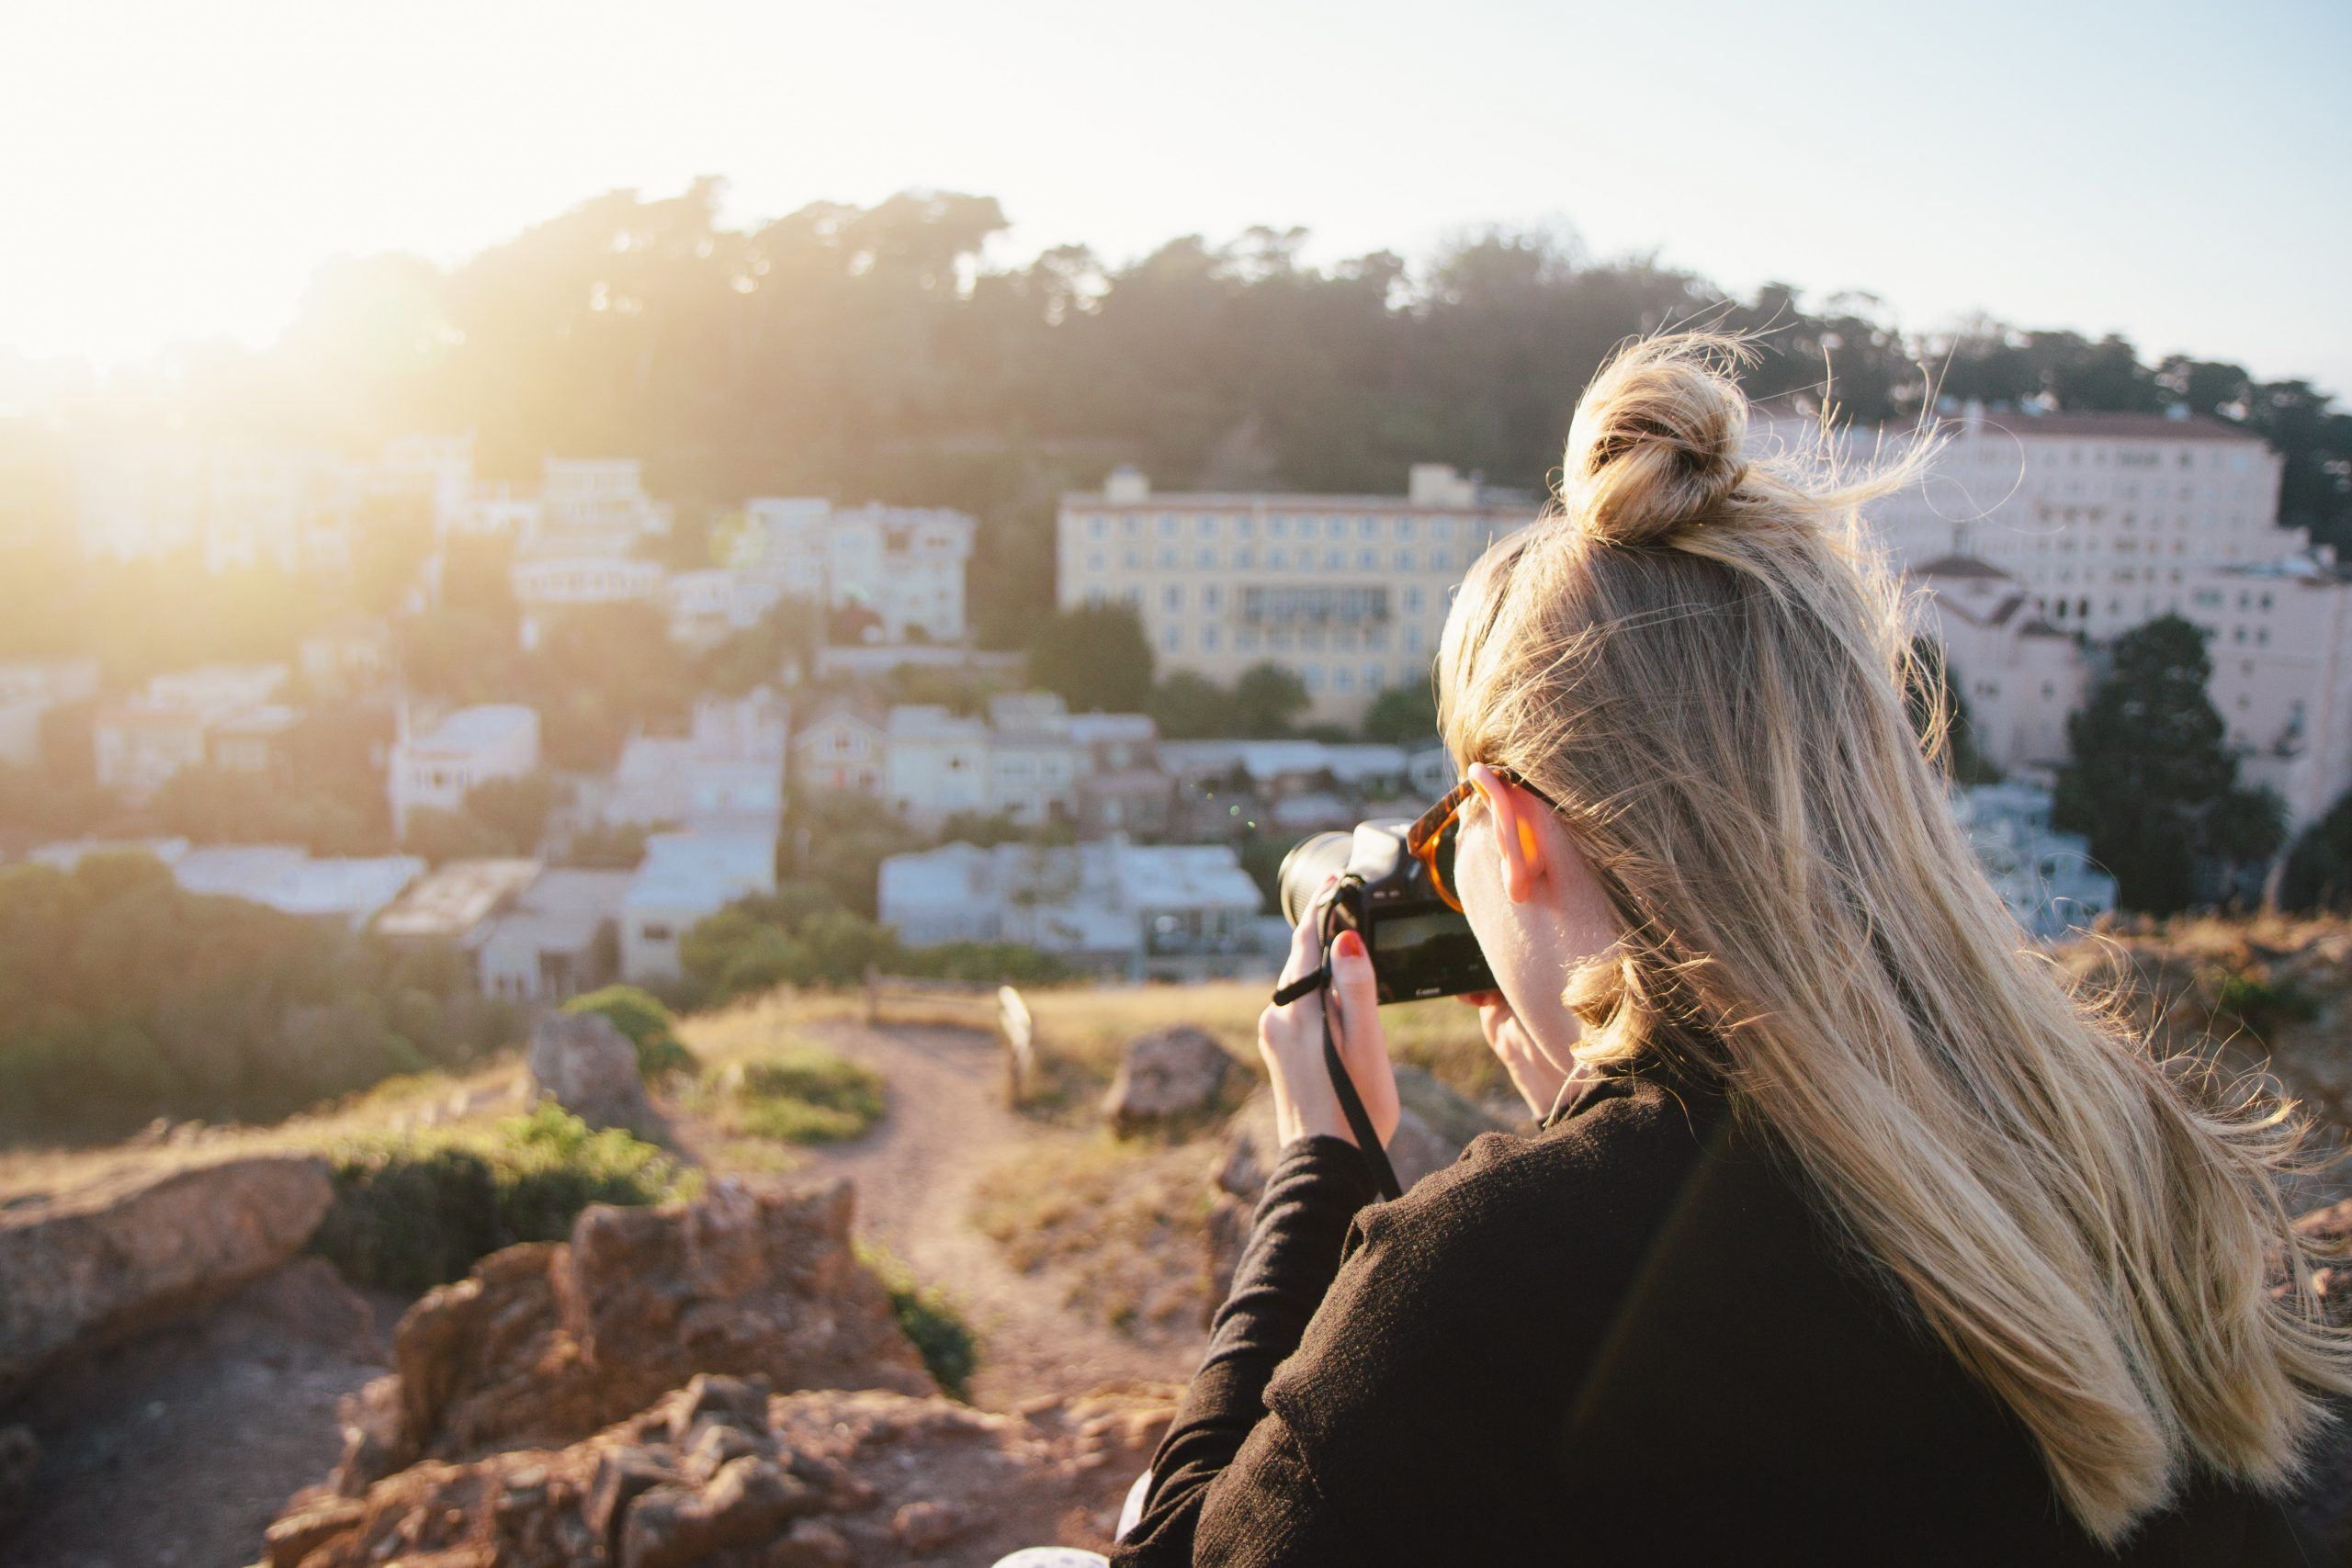 woman in black coat taking photo of city during daytime